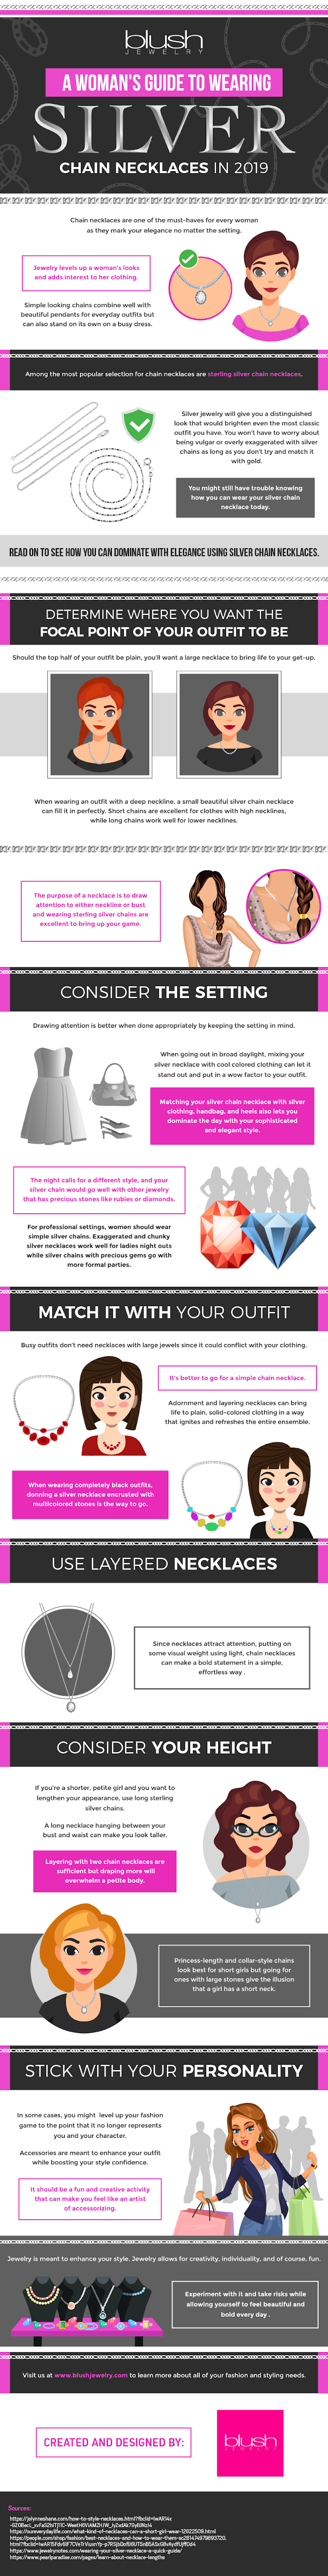 A Woman's Guide to Wearing Silver Chain Necklace in 2019 #infographic